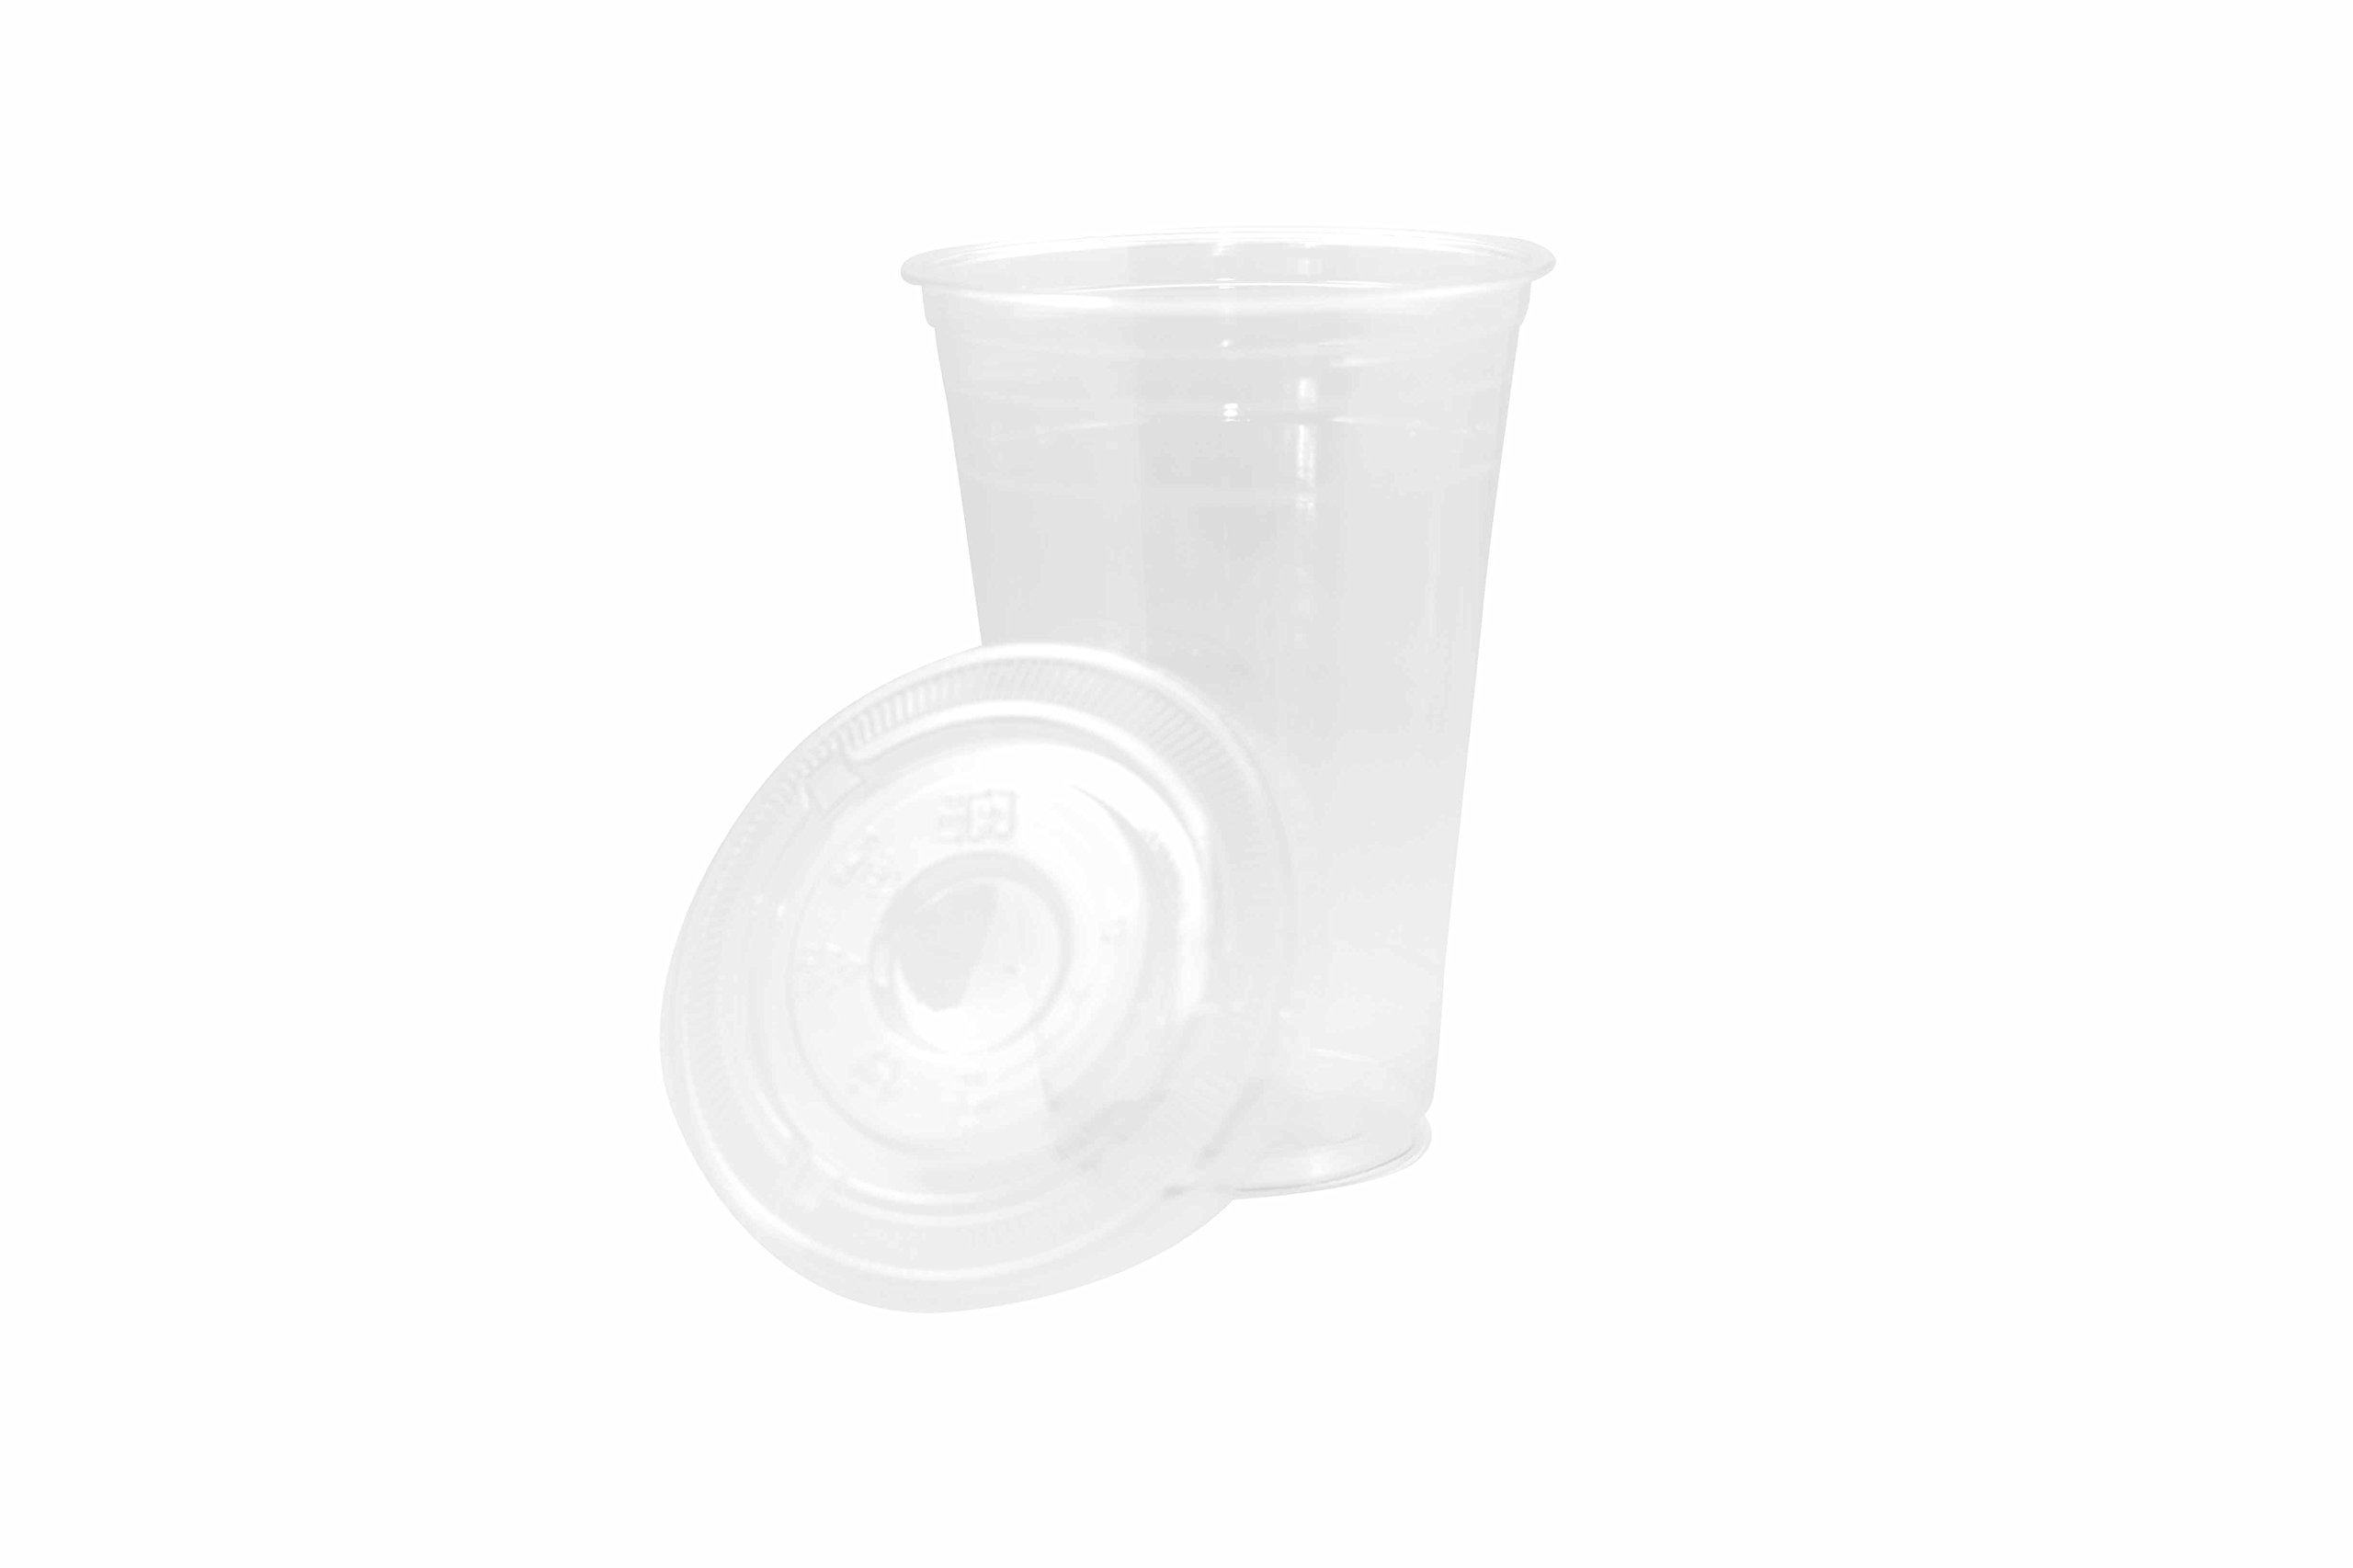 20oz Clear Plastic Disposable Cups with Flat Lids- Large Premium 20 oz (ounces) Crystal Clear PET Cup for Cold Drinks Iced Coffee Tea Juices Smoothies Soda Cocktails Beer Sundae Kids Safe (1000 Count)